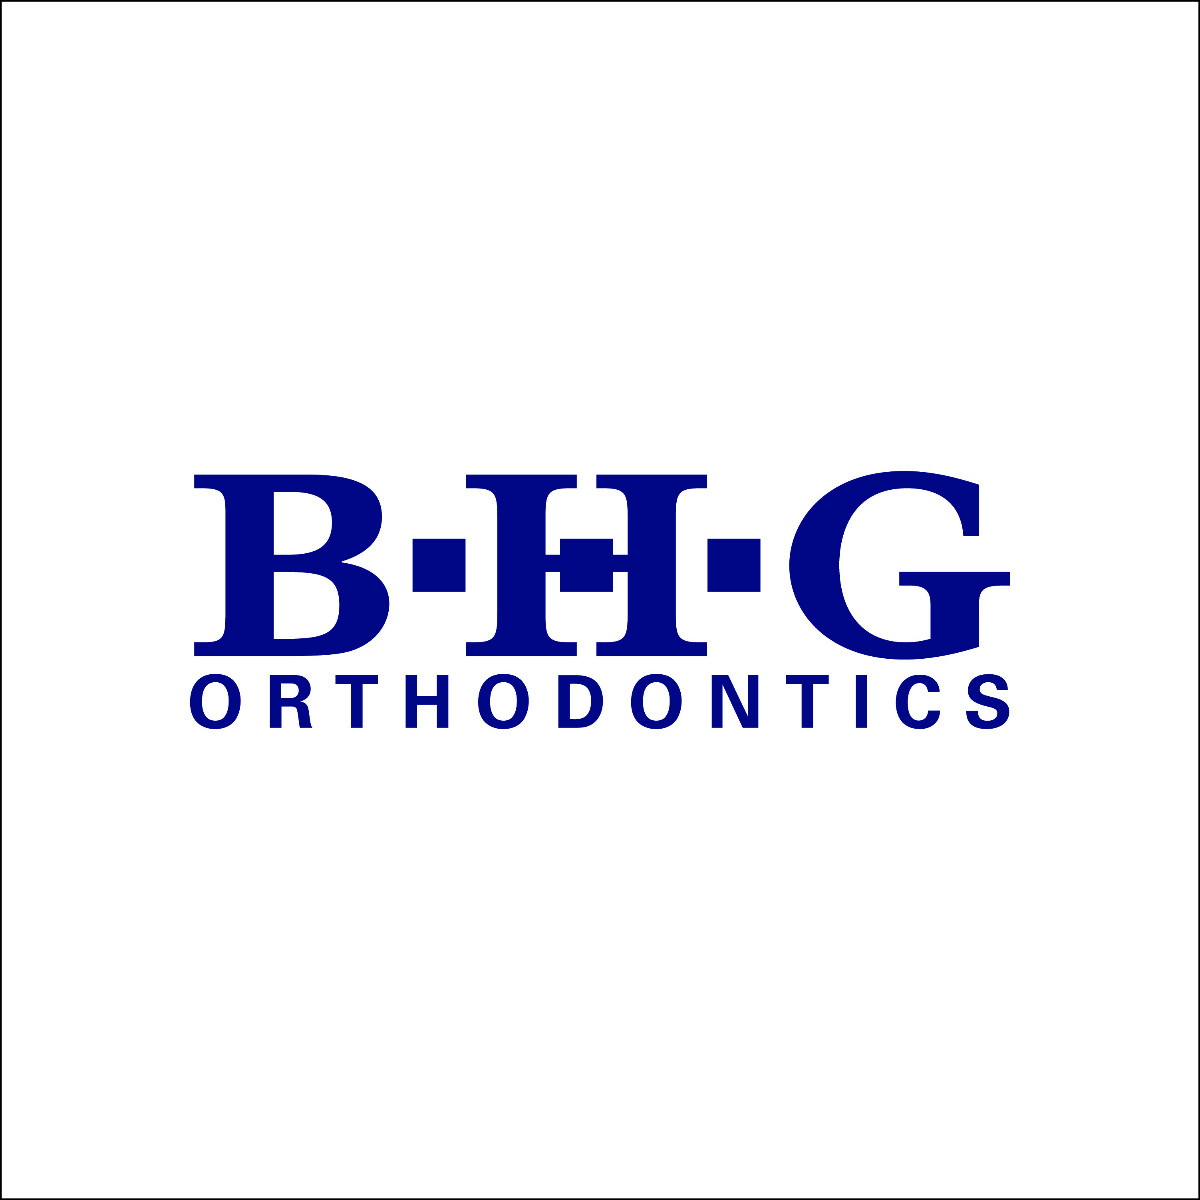 BGH Orthodontics